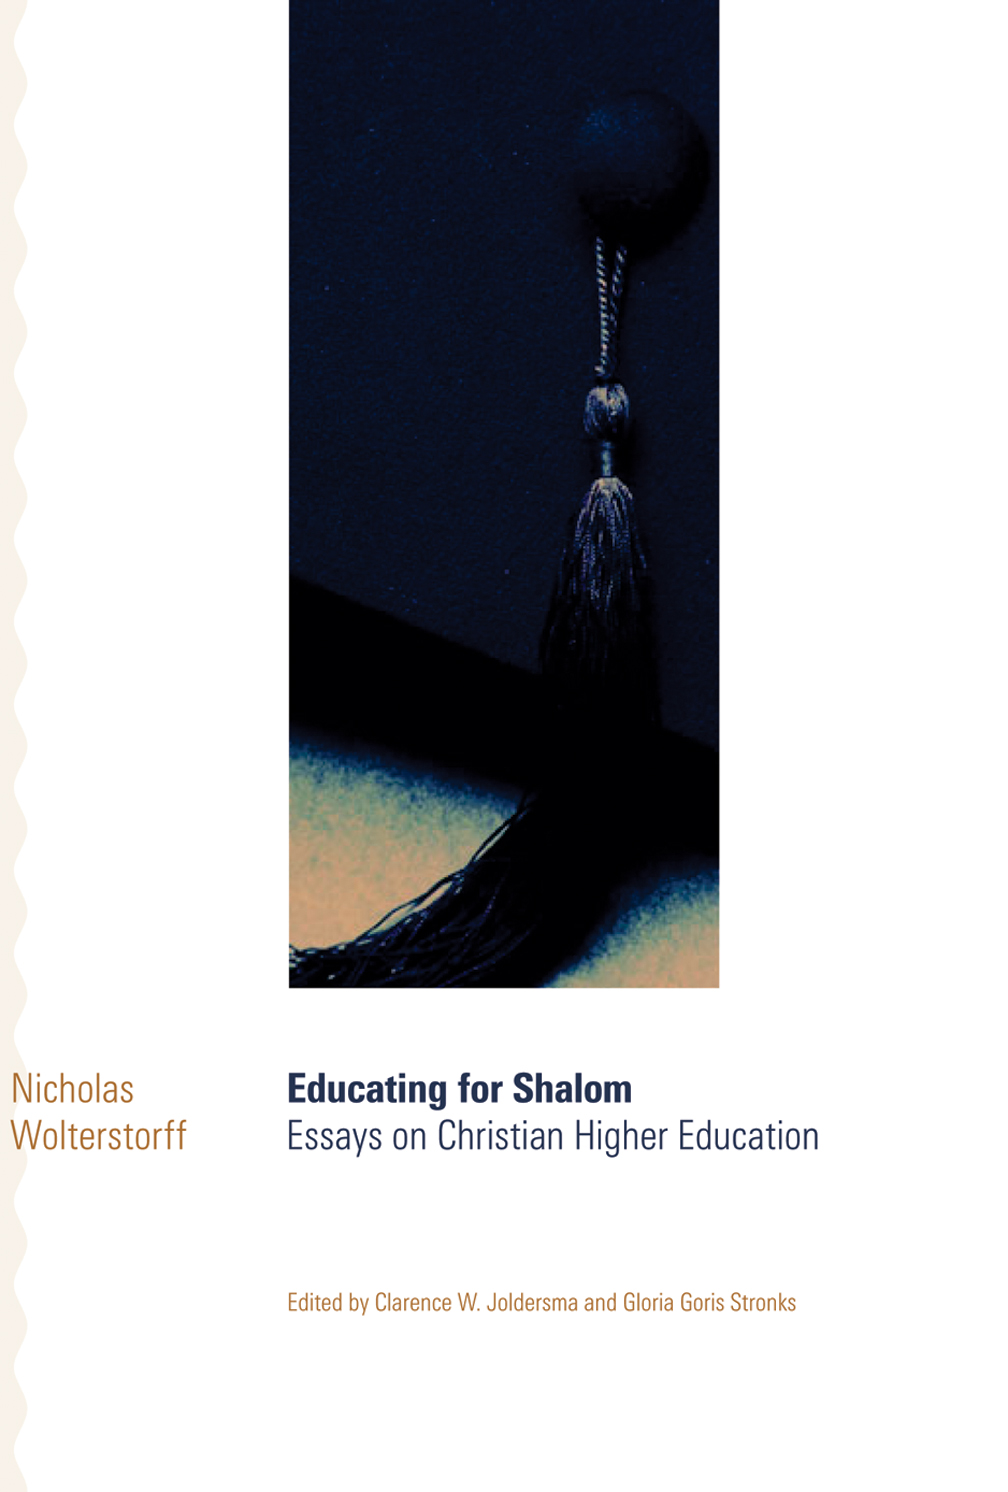 educating for shalom nicholas wolterstorff eerdmans share